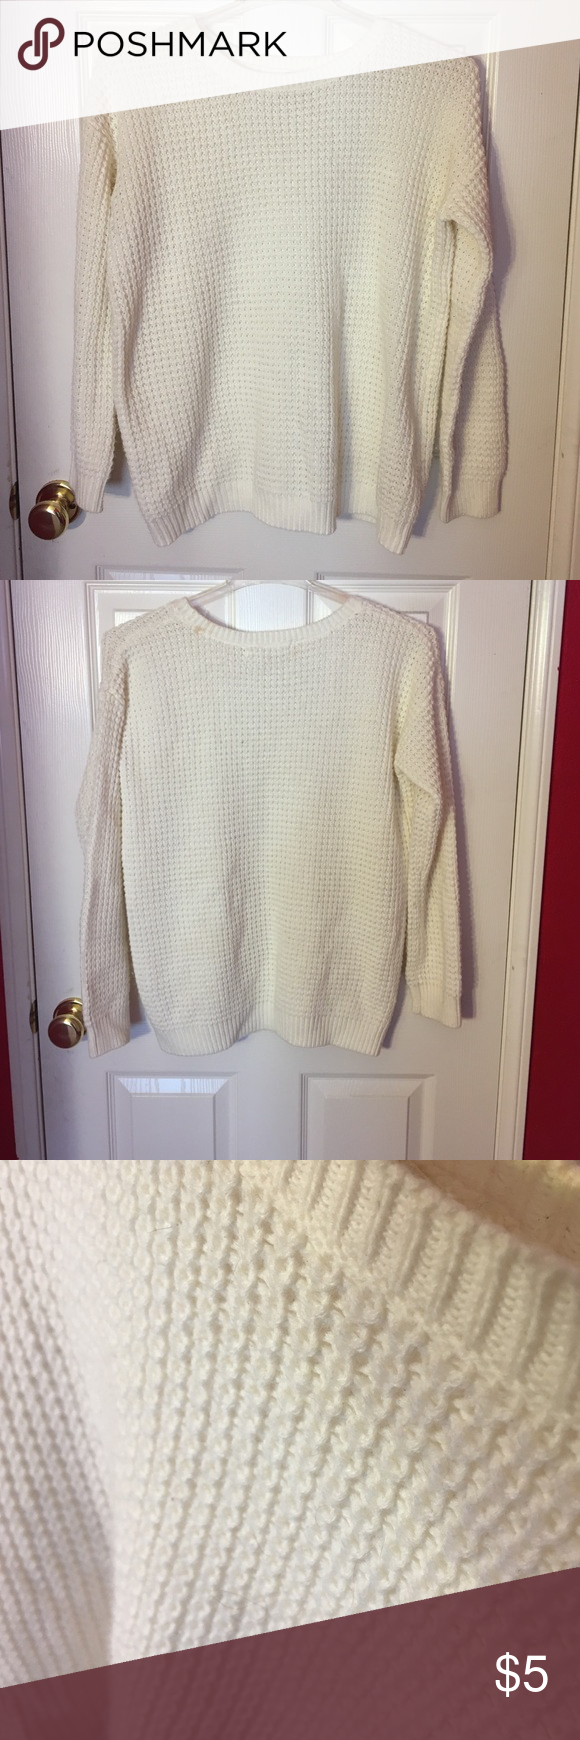 White/Cream Knit Sweater Slouchy white/cream colored knit sweater ...